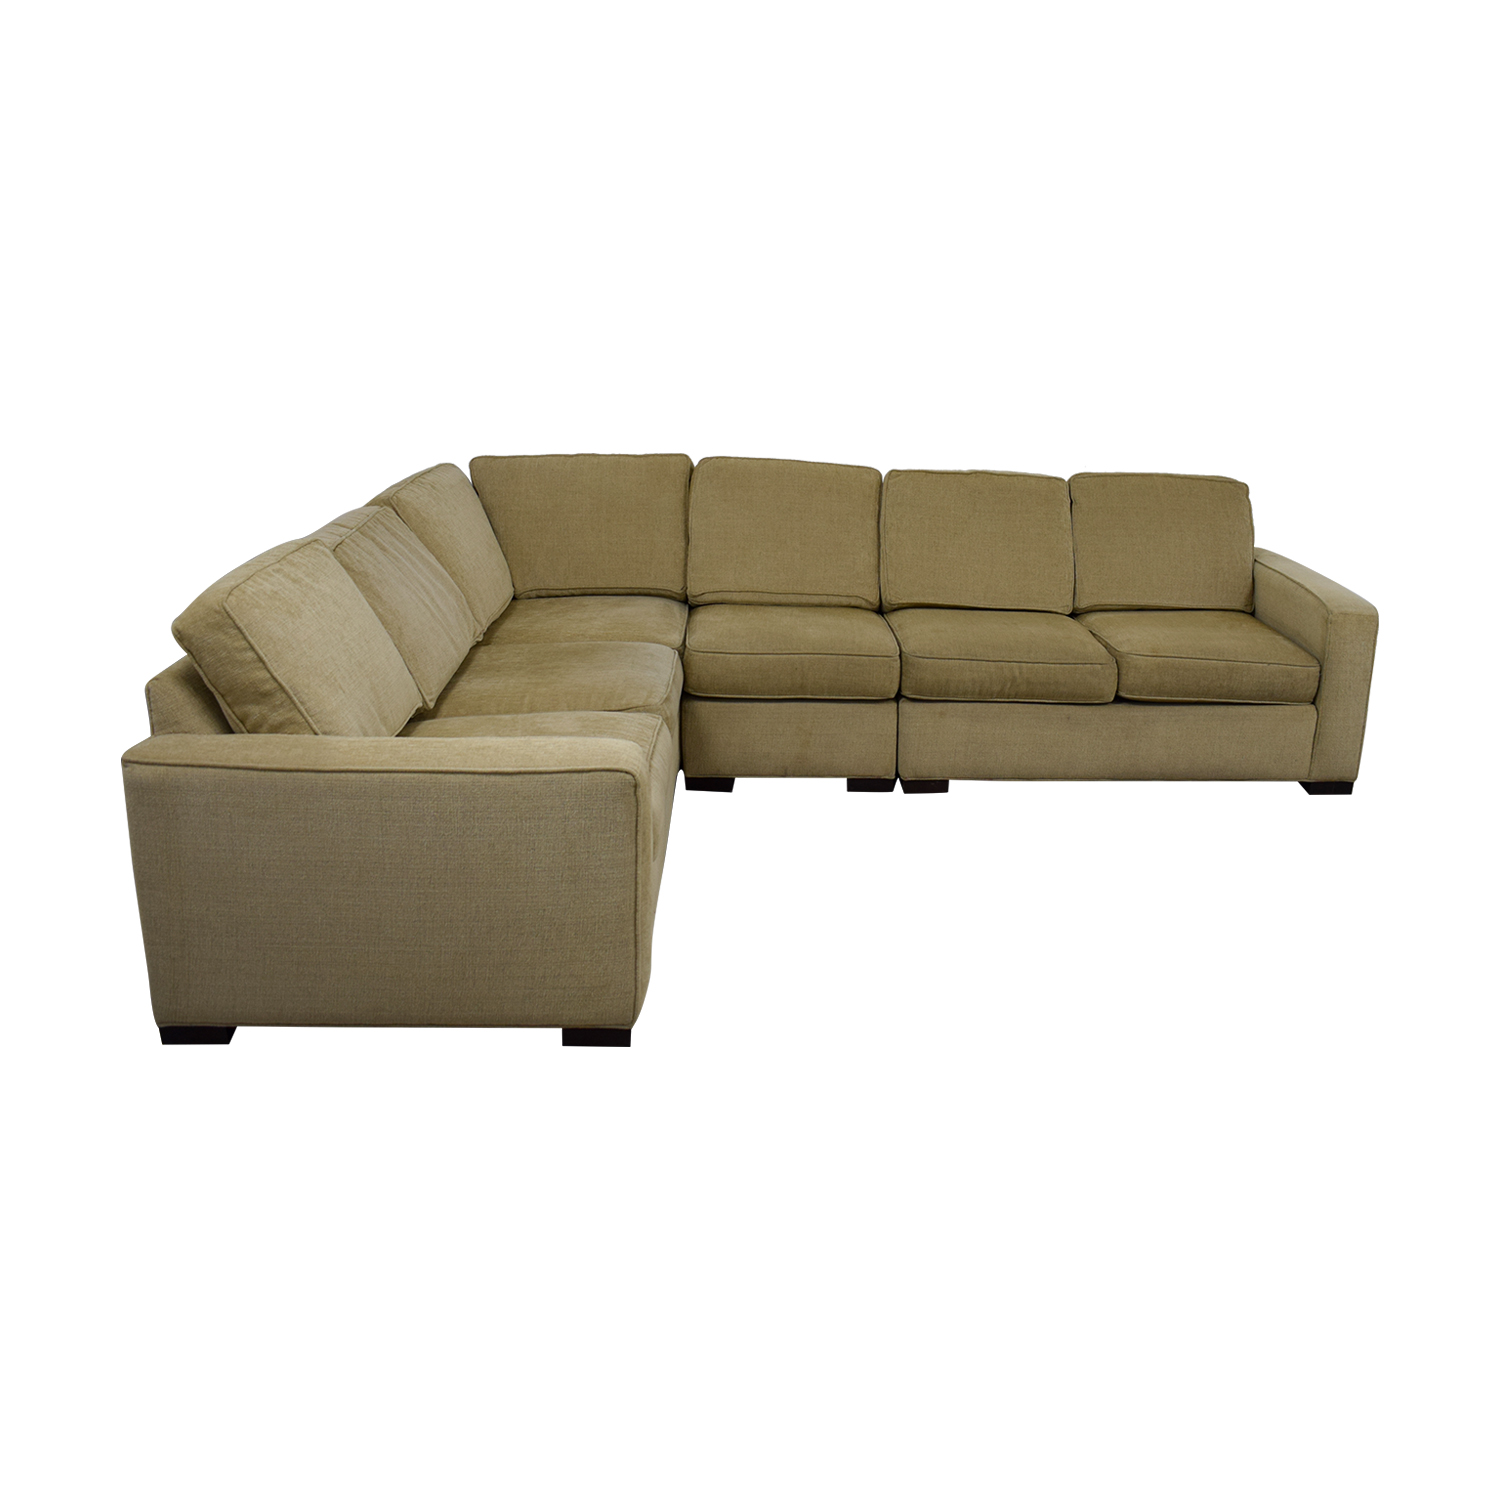 Ethan Allen Ethan Allen Tan Sectional Couch on sale